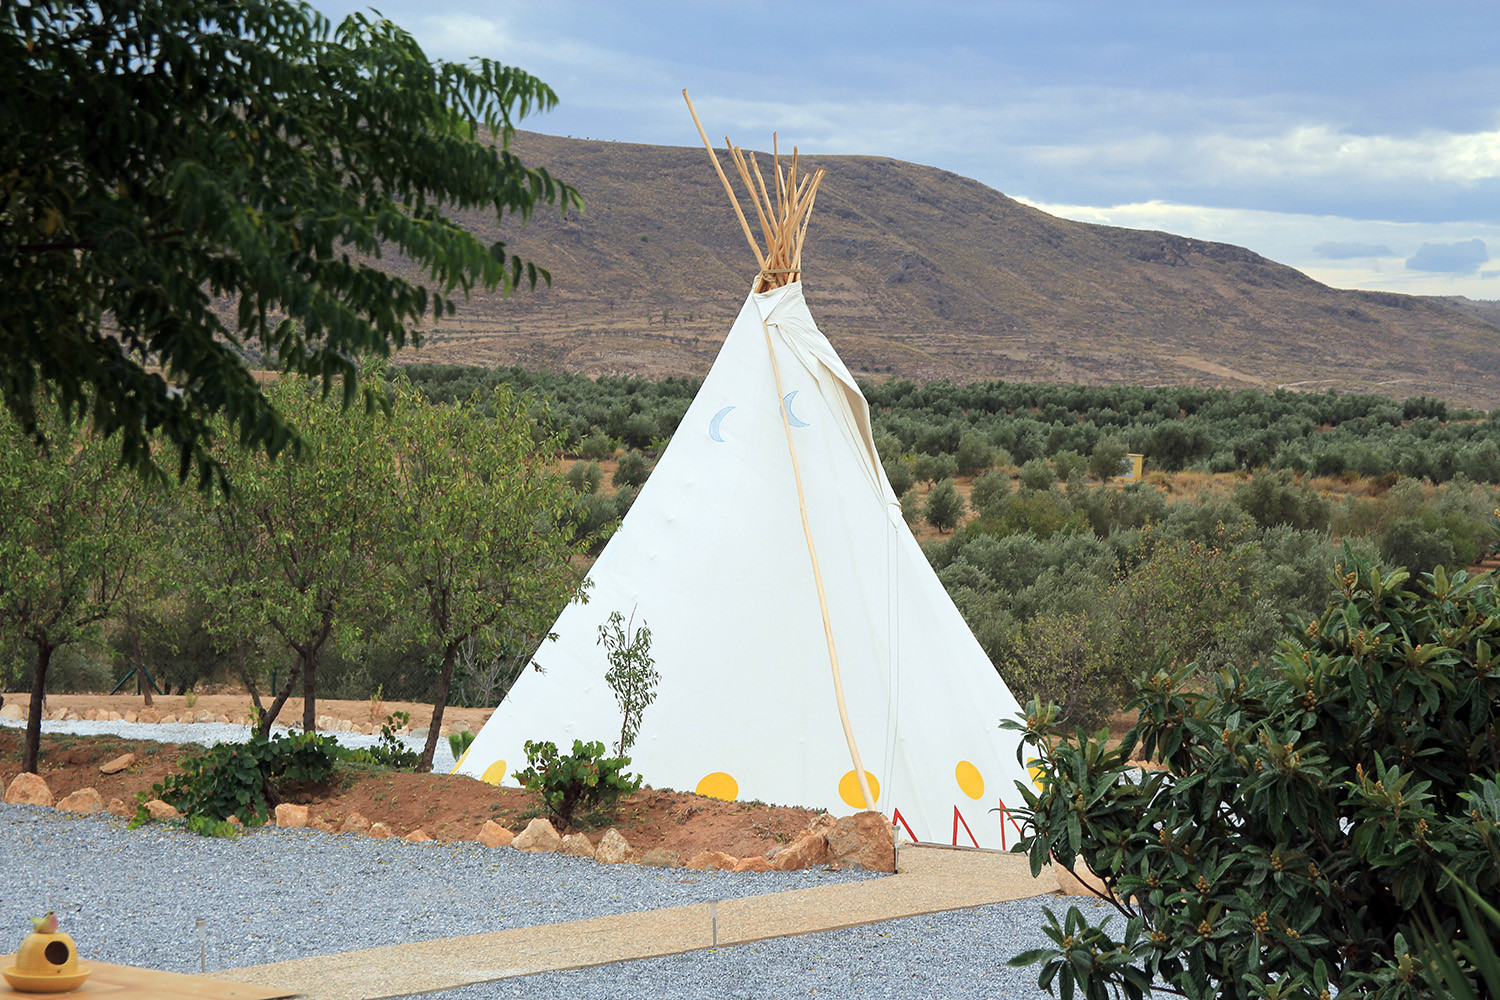 View on the back of the teepee